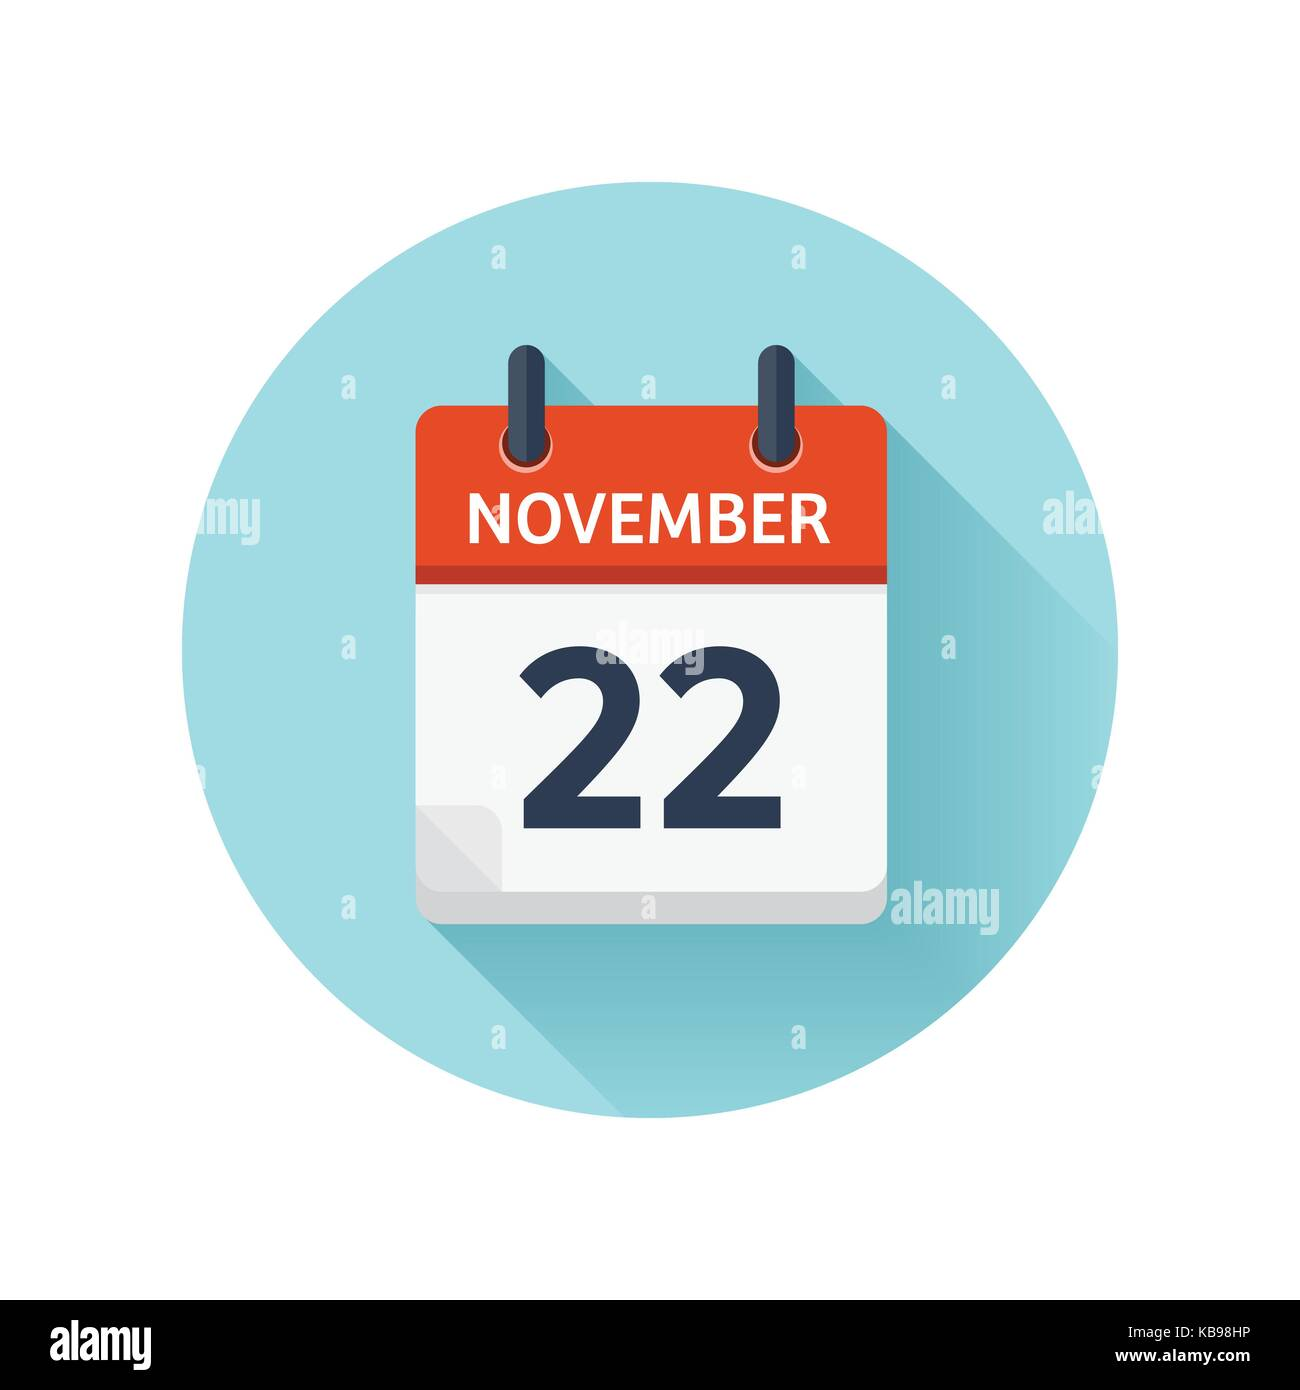 november 22 vector flat daily calendar icon date and time day rh alamy com